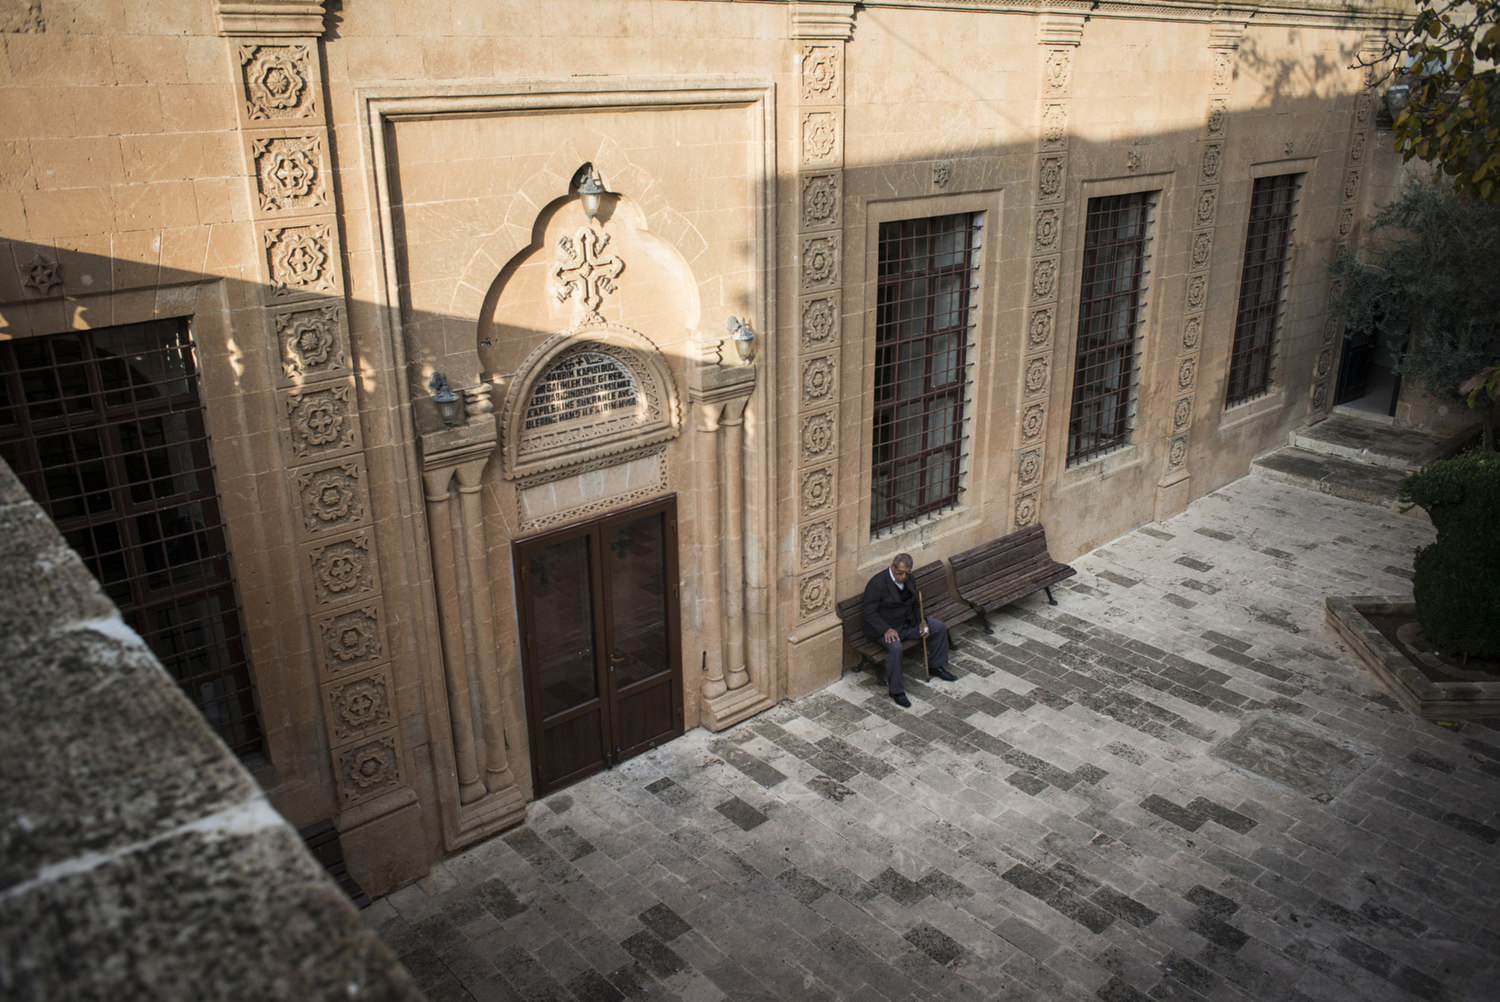 A man waits in the courtyard of Mor Barsaumo church on October 31th, 2014.